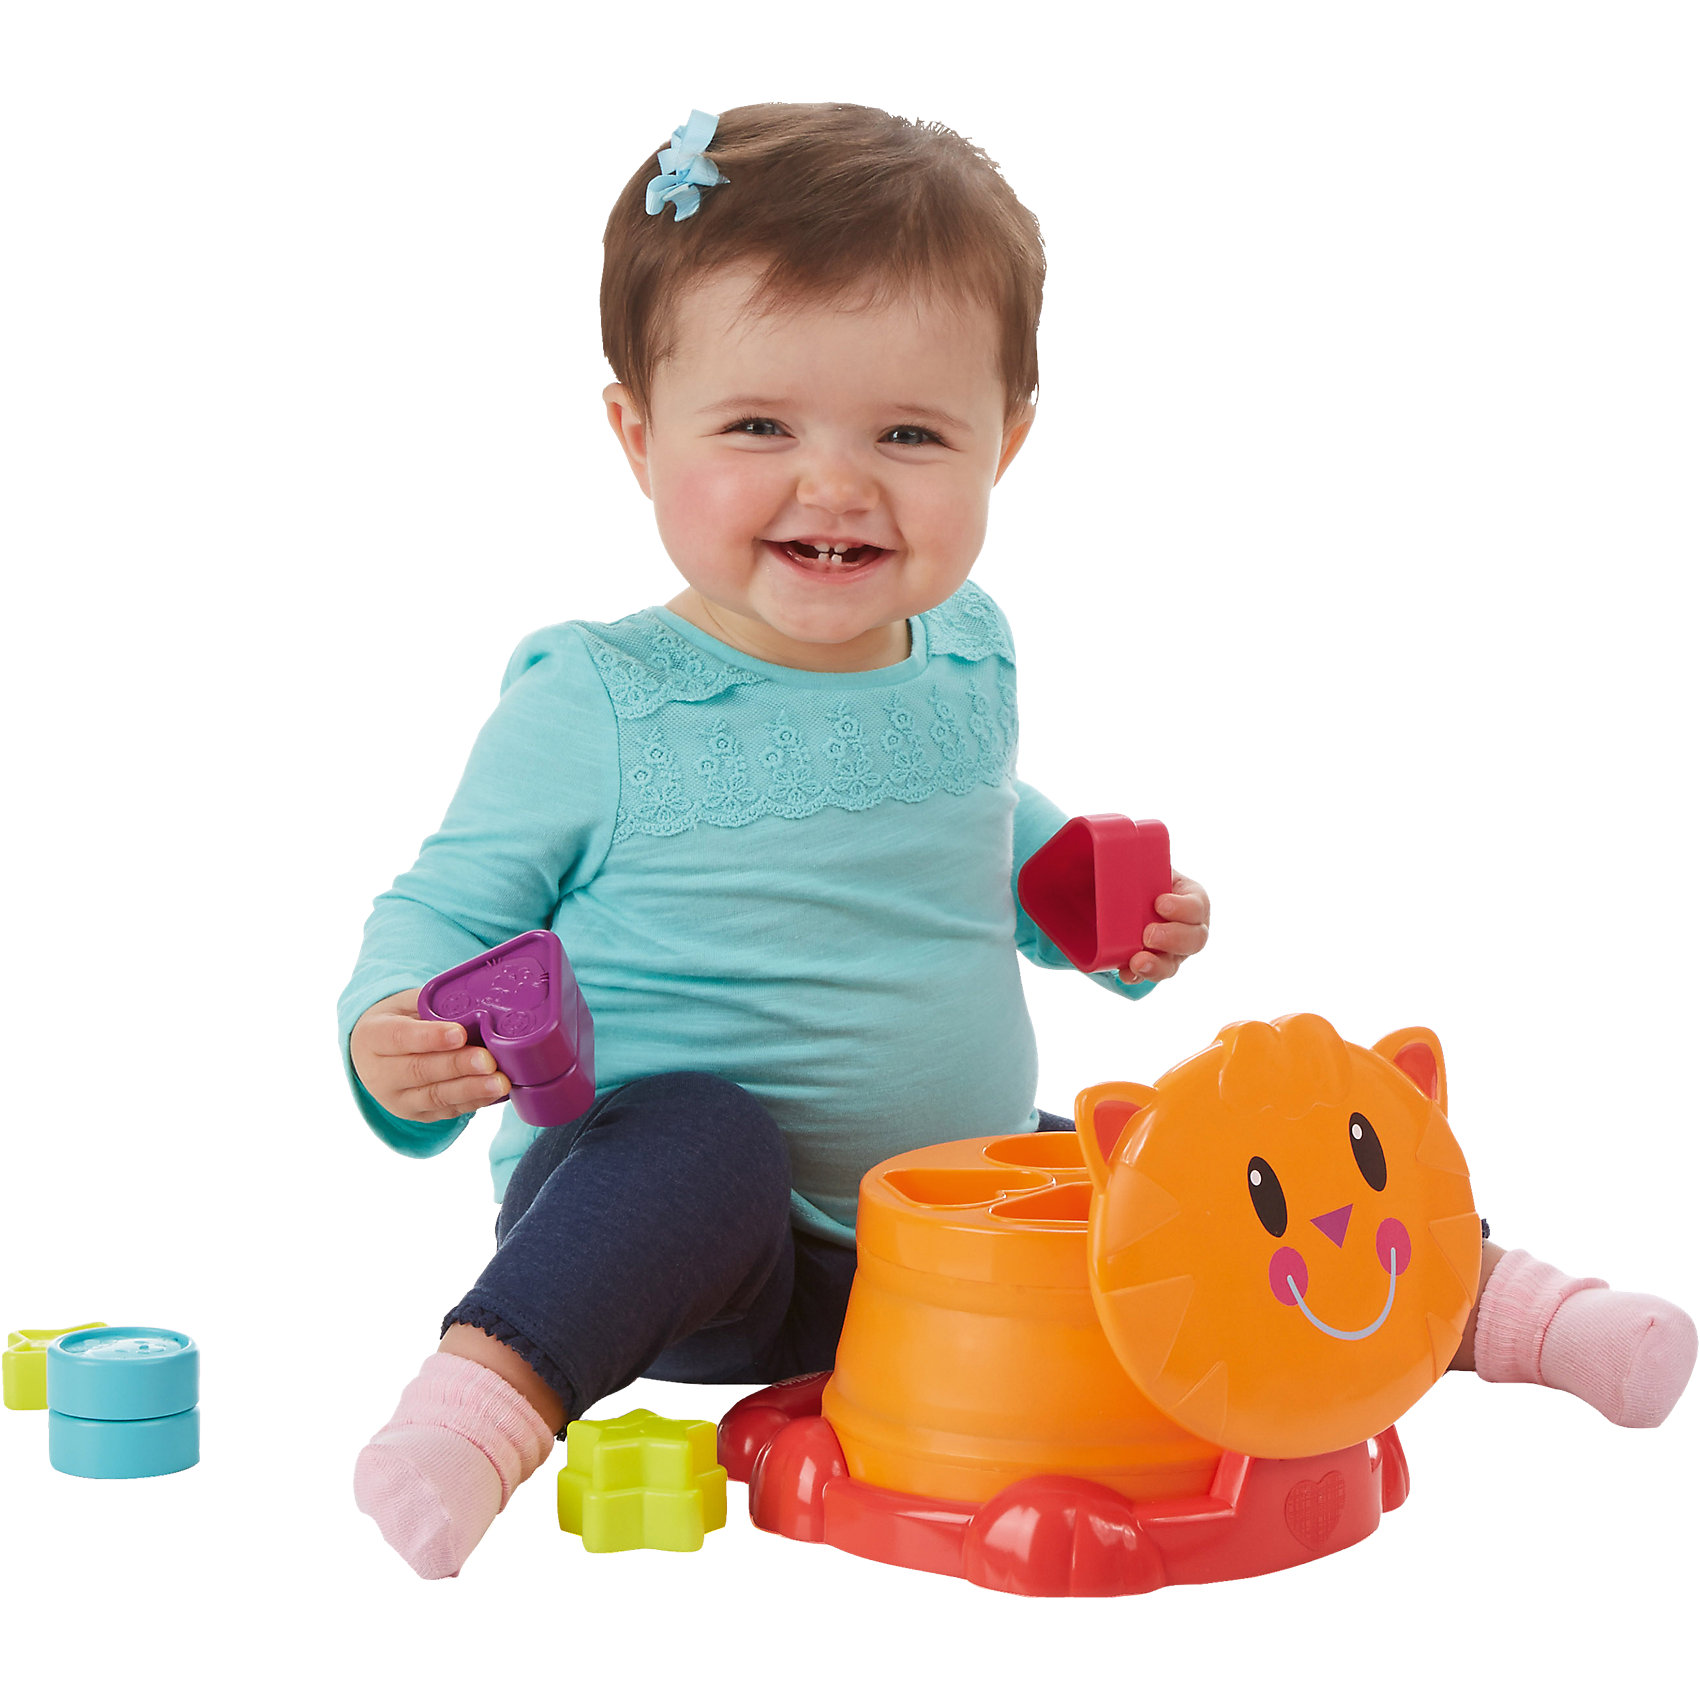 Складной сортер, PLAYSKOOL